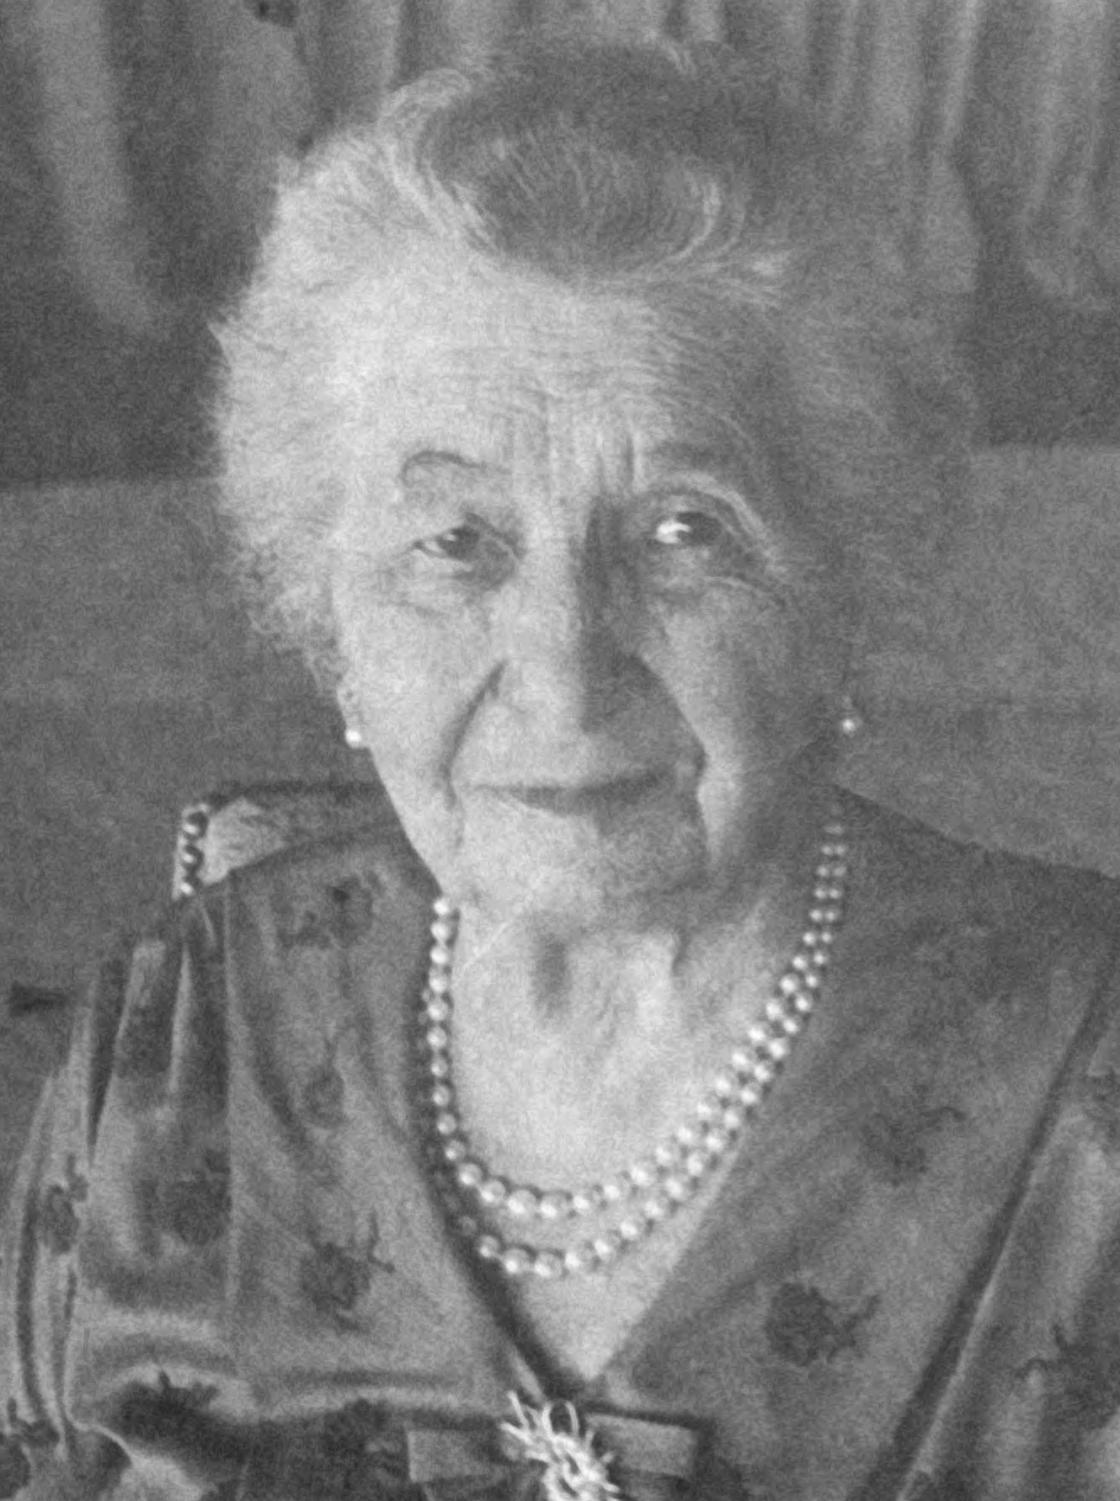 Matilda Dodge Wilson, co-founder of Oakland University, would be celebrating her 139th birthday on Oct. 18 this year.